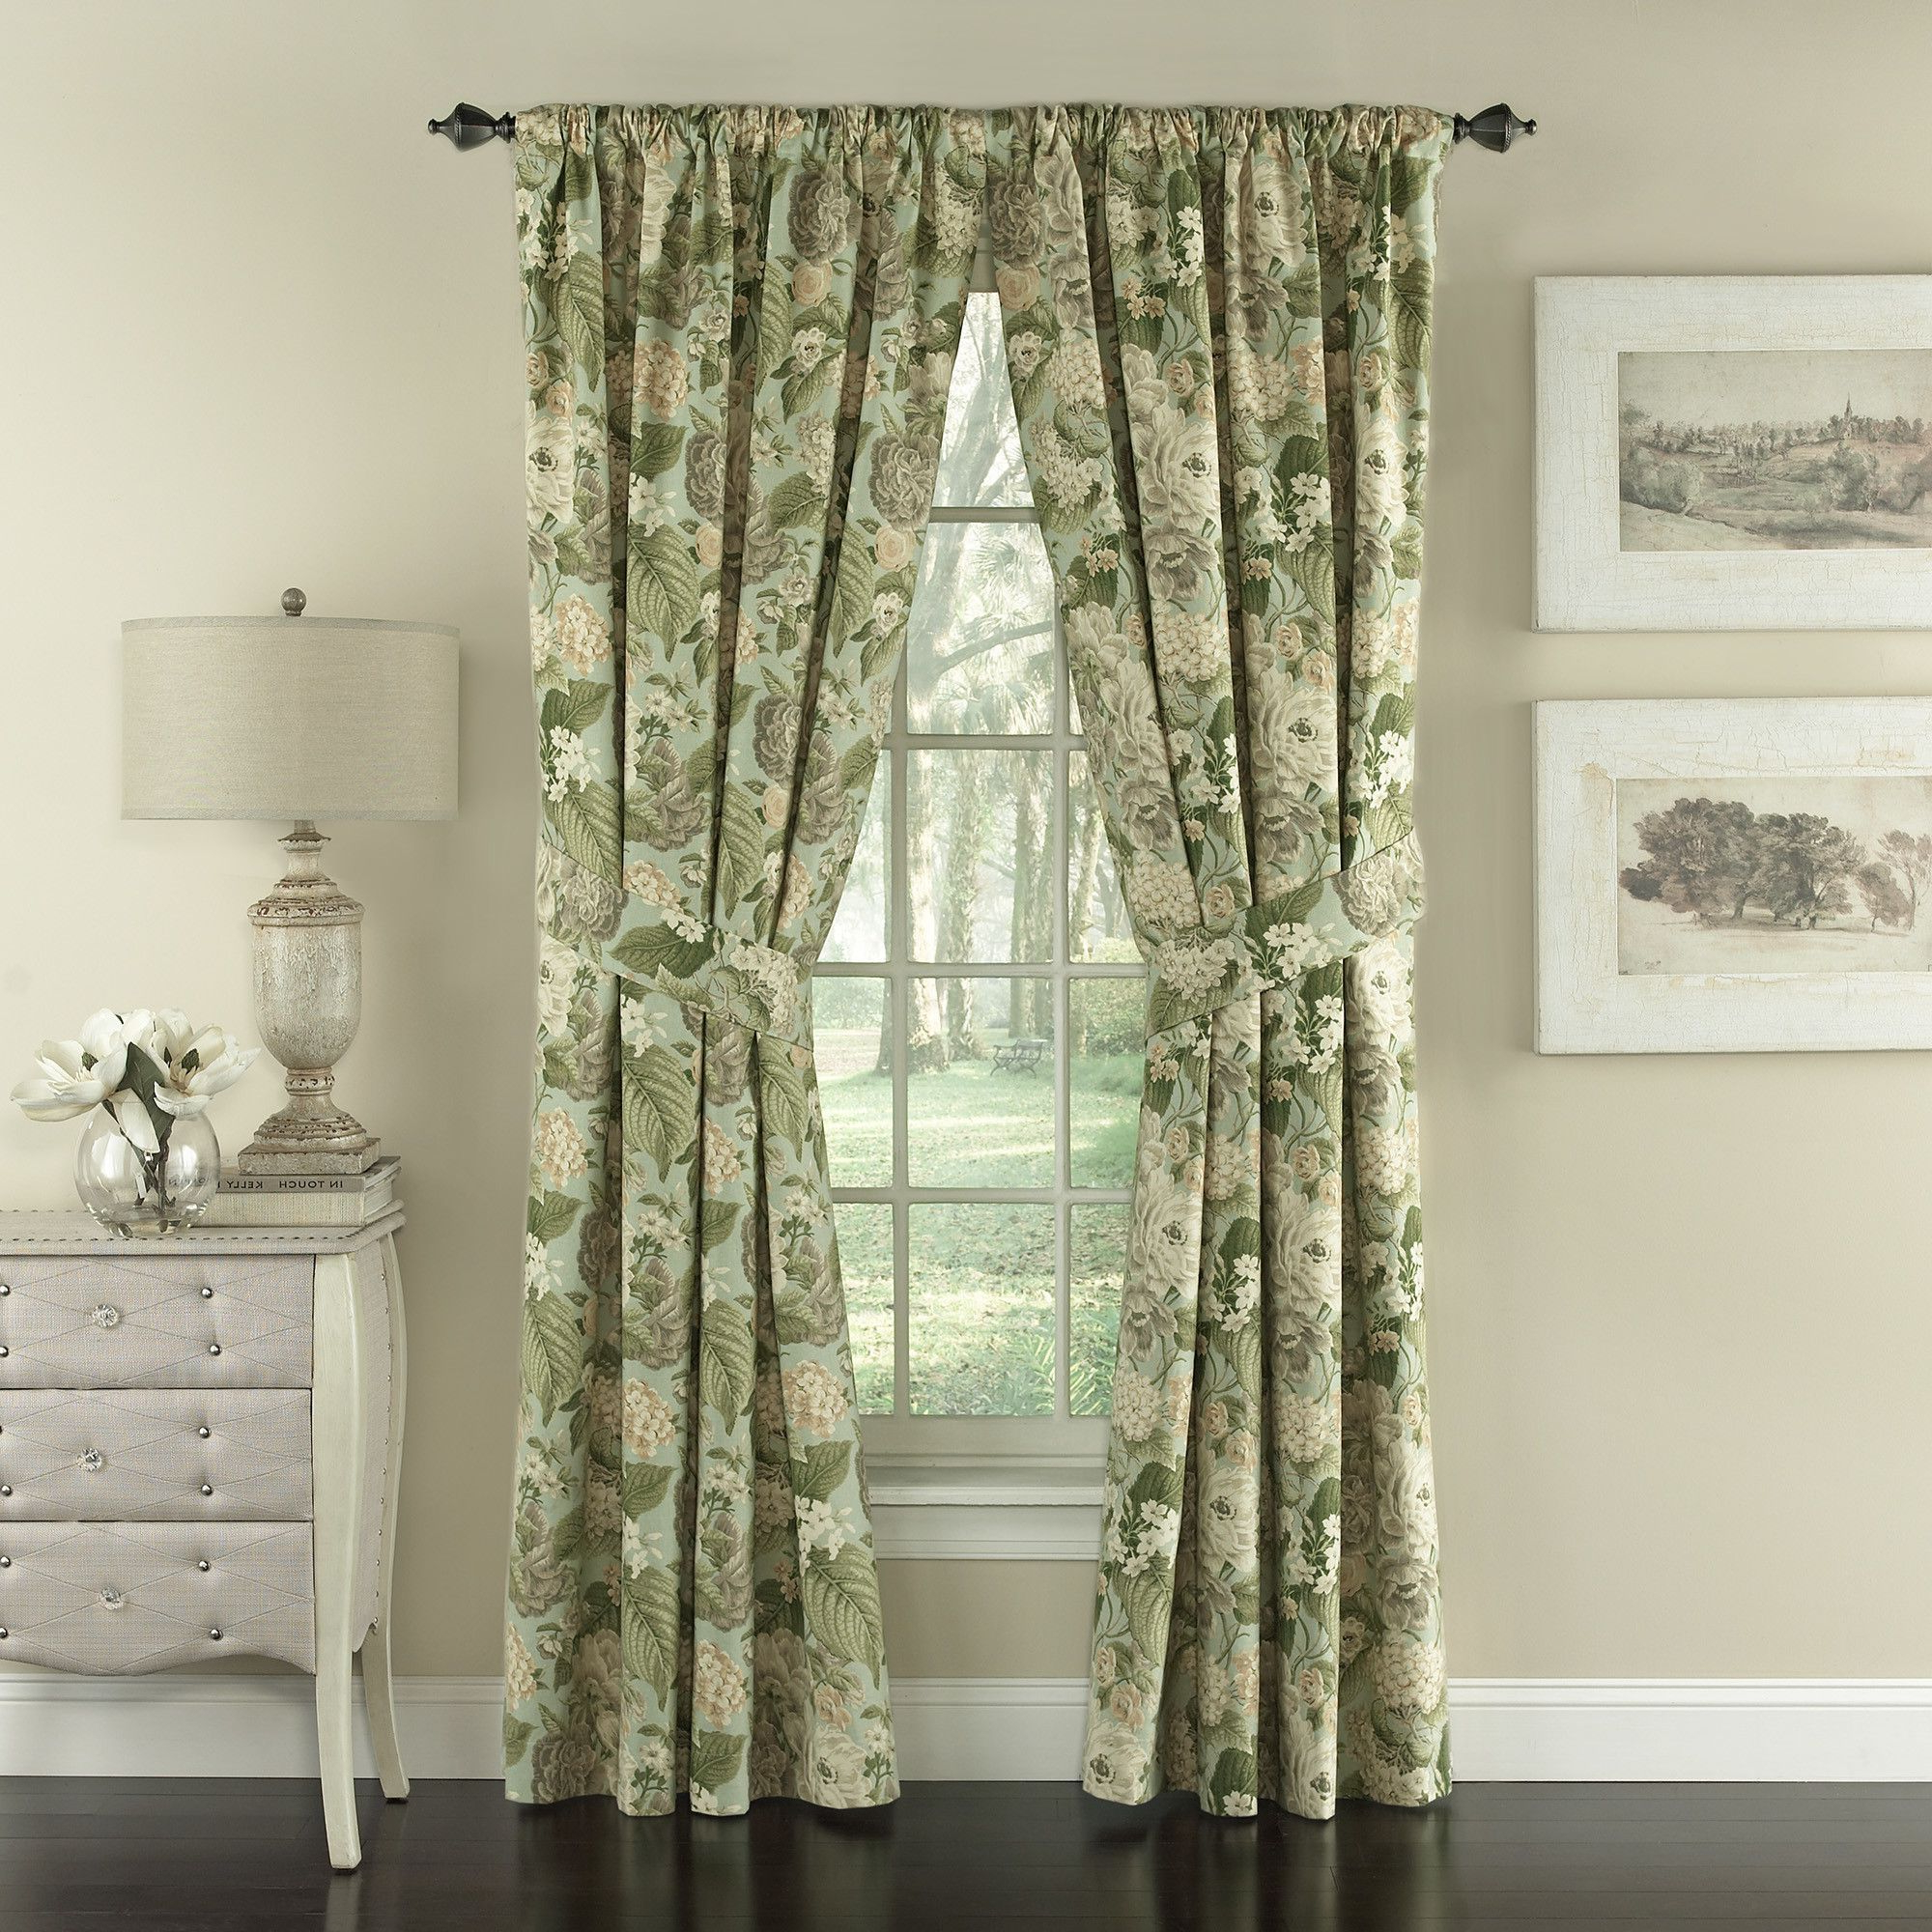 Garden Glory Nature/floral Semi Sheer Rod Pocket Curtain Inside Most Current Andorra Watercolor Floral Textured Sheer Single Curtain Panels (View 9 of 20)